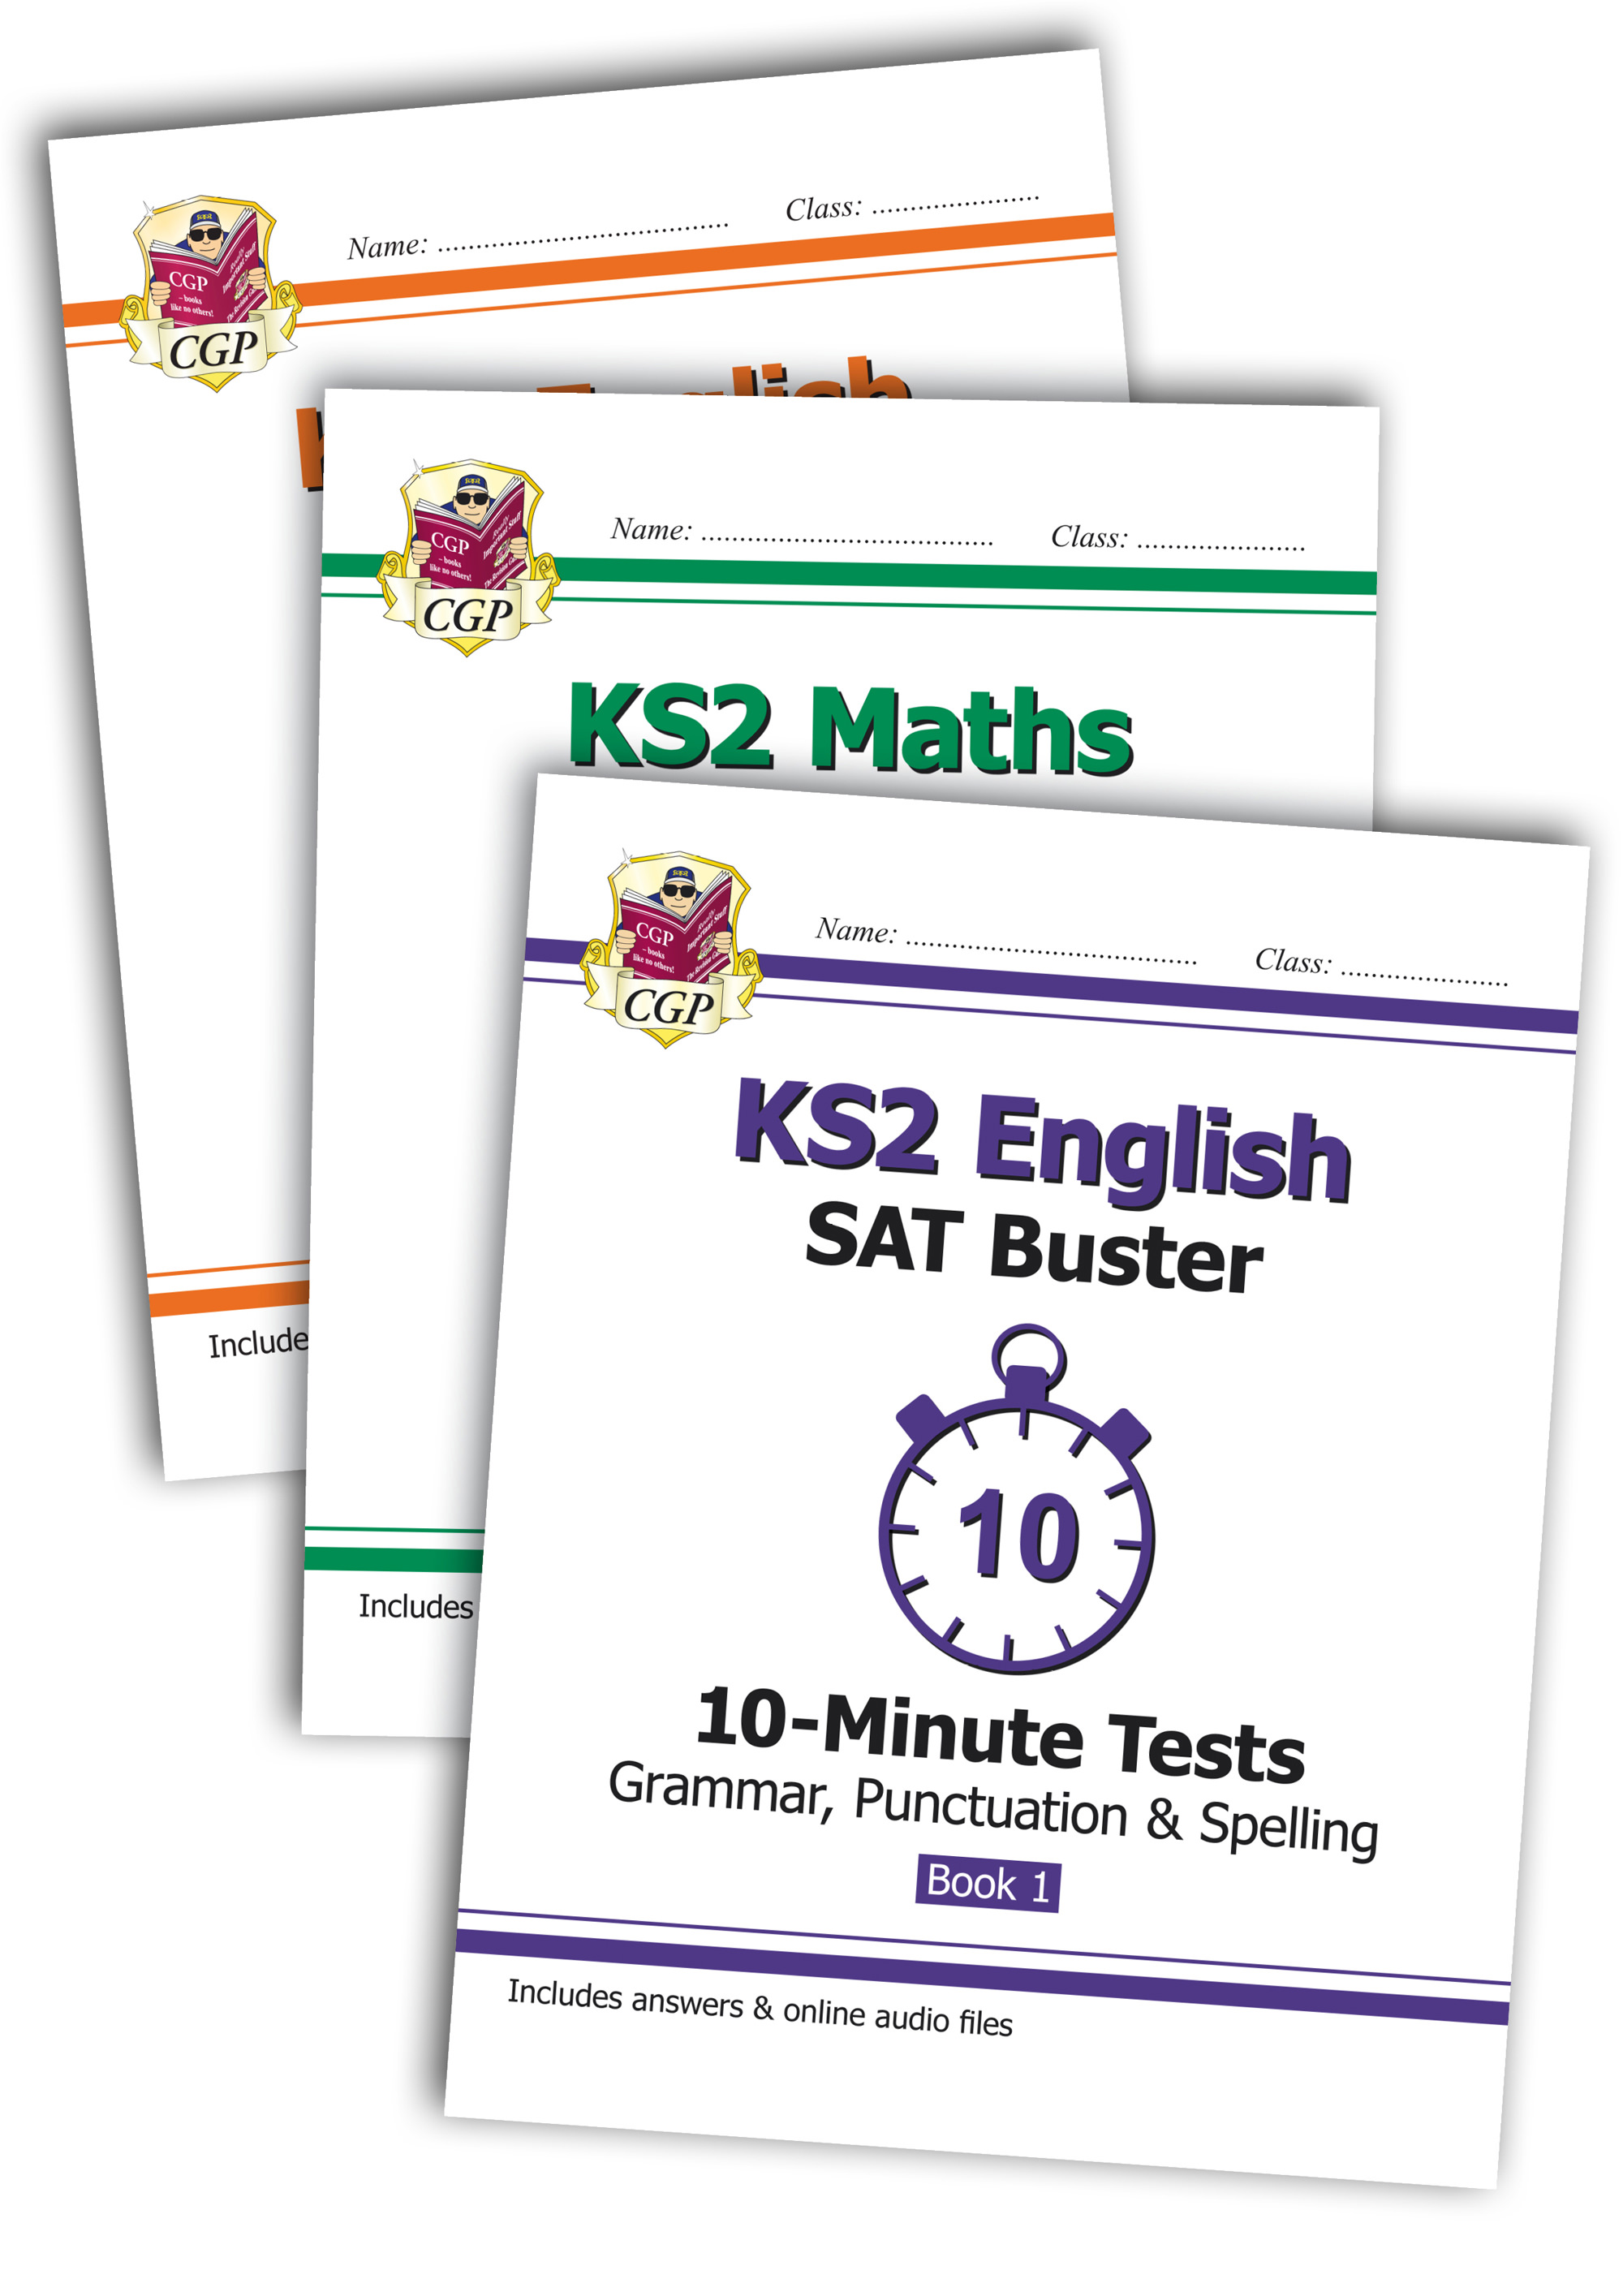 EMXB23 - The Complete KS2 Maths and English 10-Minute Test SAT Buster Book 1 Bundle (for the 2019 te